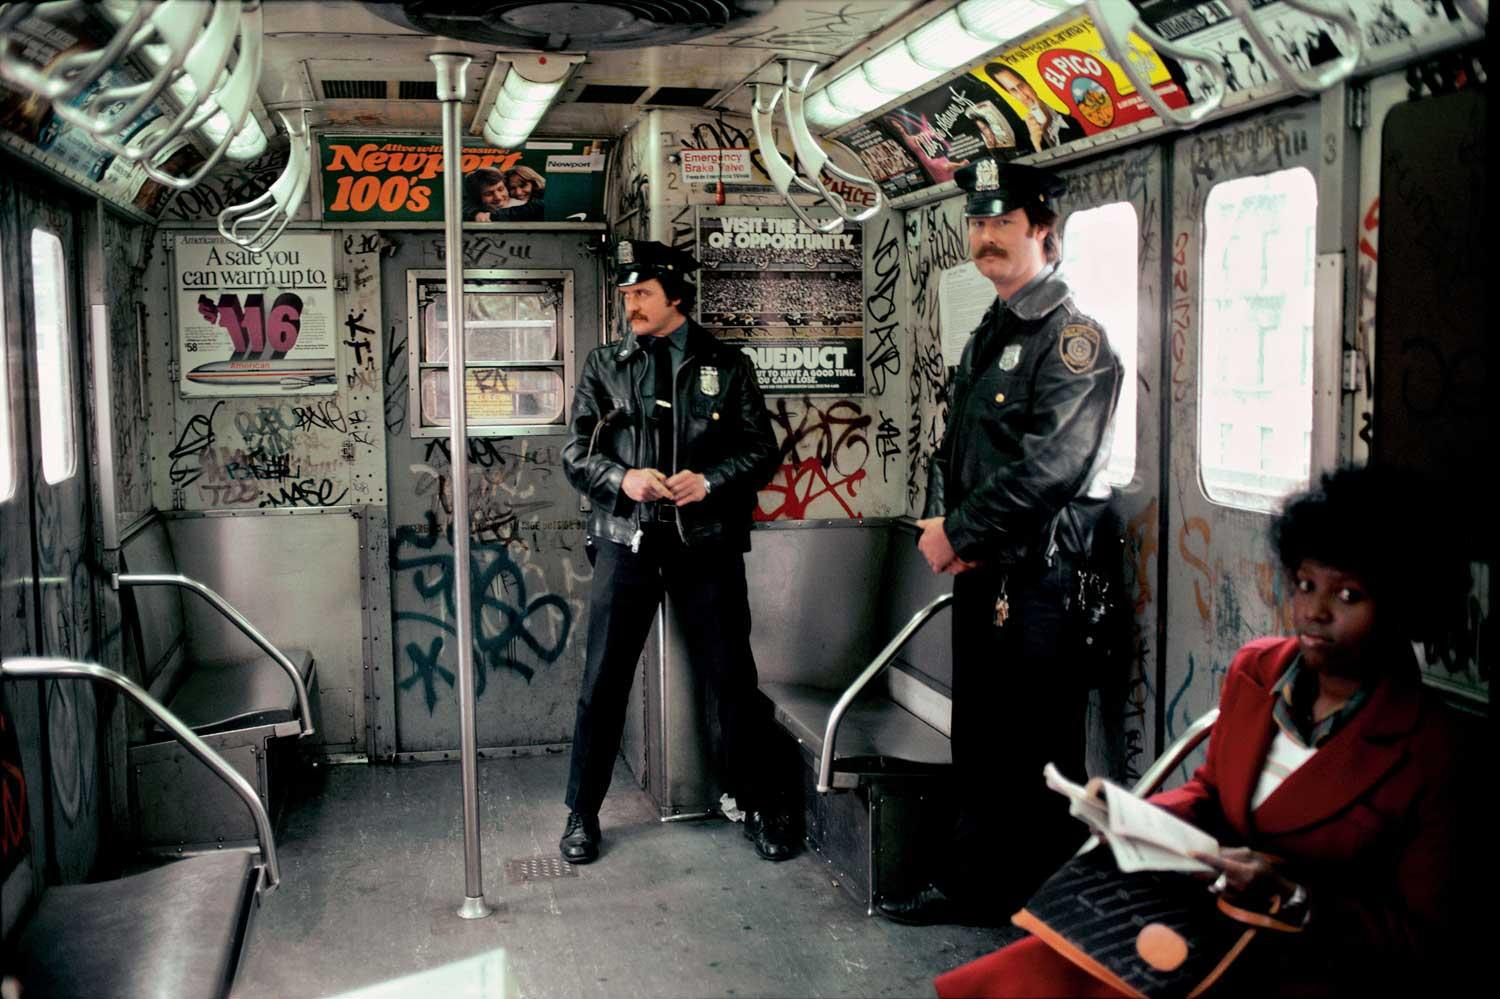 NYPD Riding the Subway in the 1980's